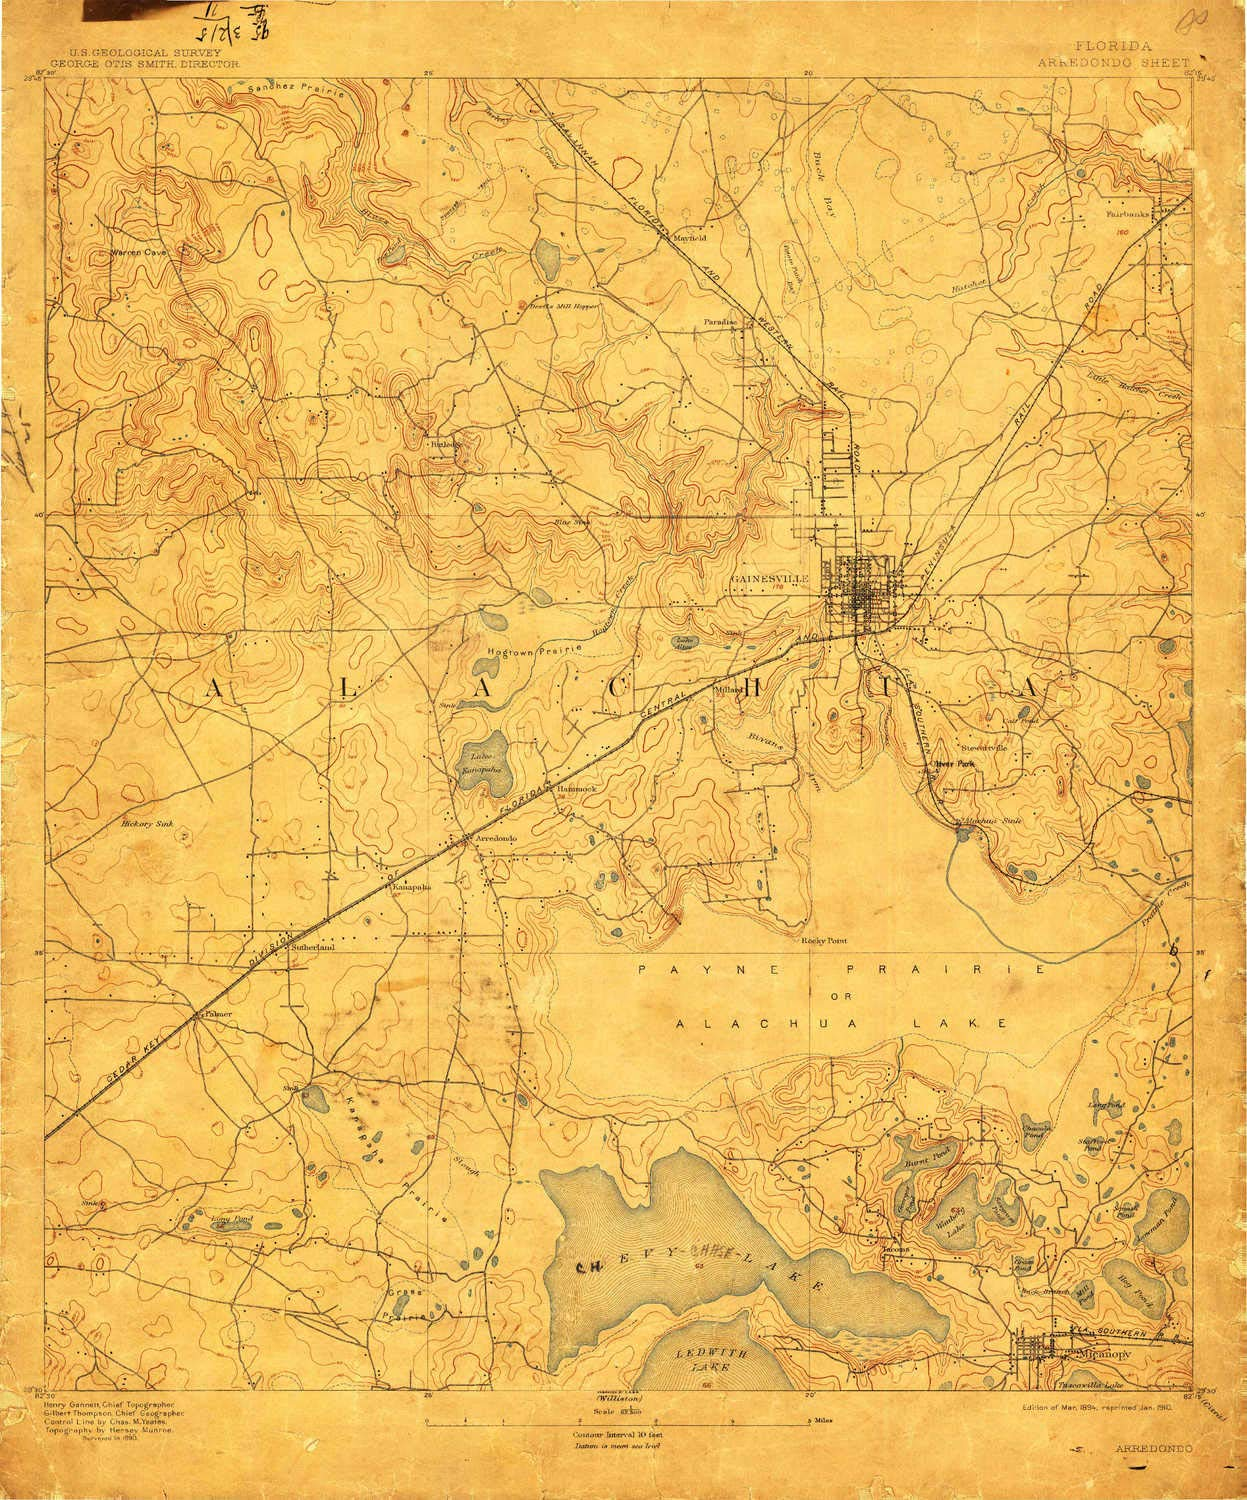 Amazon.com : YellowMaps Arredondo FL topo map, 1:62500 Scale, 15 X on map of florida tennessee, map of florida st. augustine, map of florida lake worth, map of florida hawthorne, map of florida lakeland, map of florida crestview, map of florida fort lauderdale area, map of florida fort walton beach, map of florida panhandle, map of florida chicago, map of florida state college, map of florida tampa bay area, map of florida st. petersburg, map of florida jackson county, map of florida naples, map of florida port st. lucie, map of florida gulfport, map of florida chipley, map of florida gulf shores, map of florida ocala national forest,